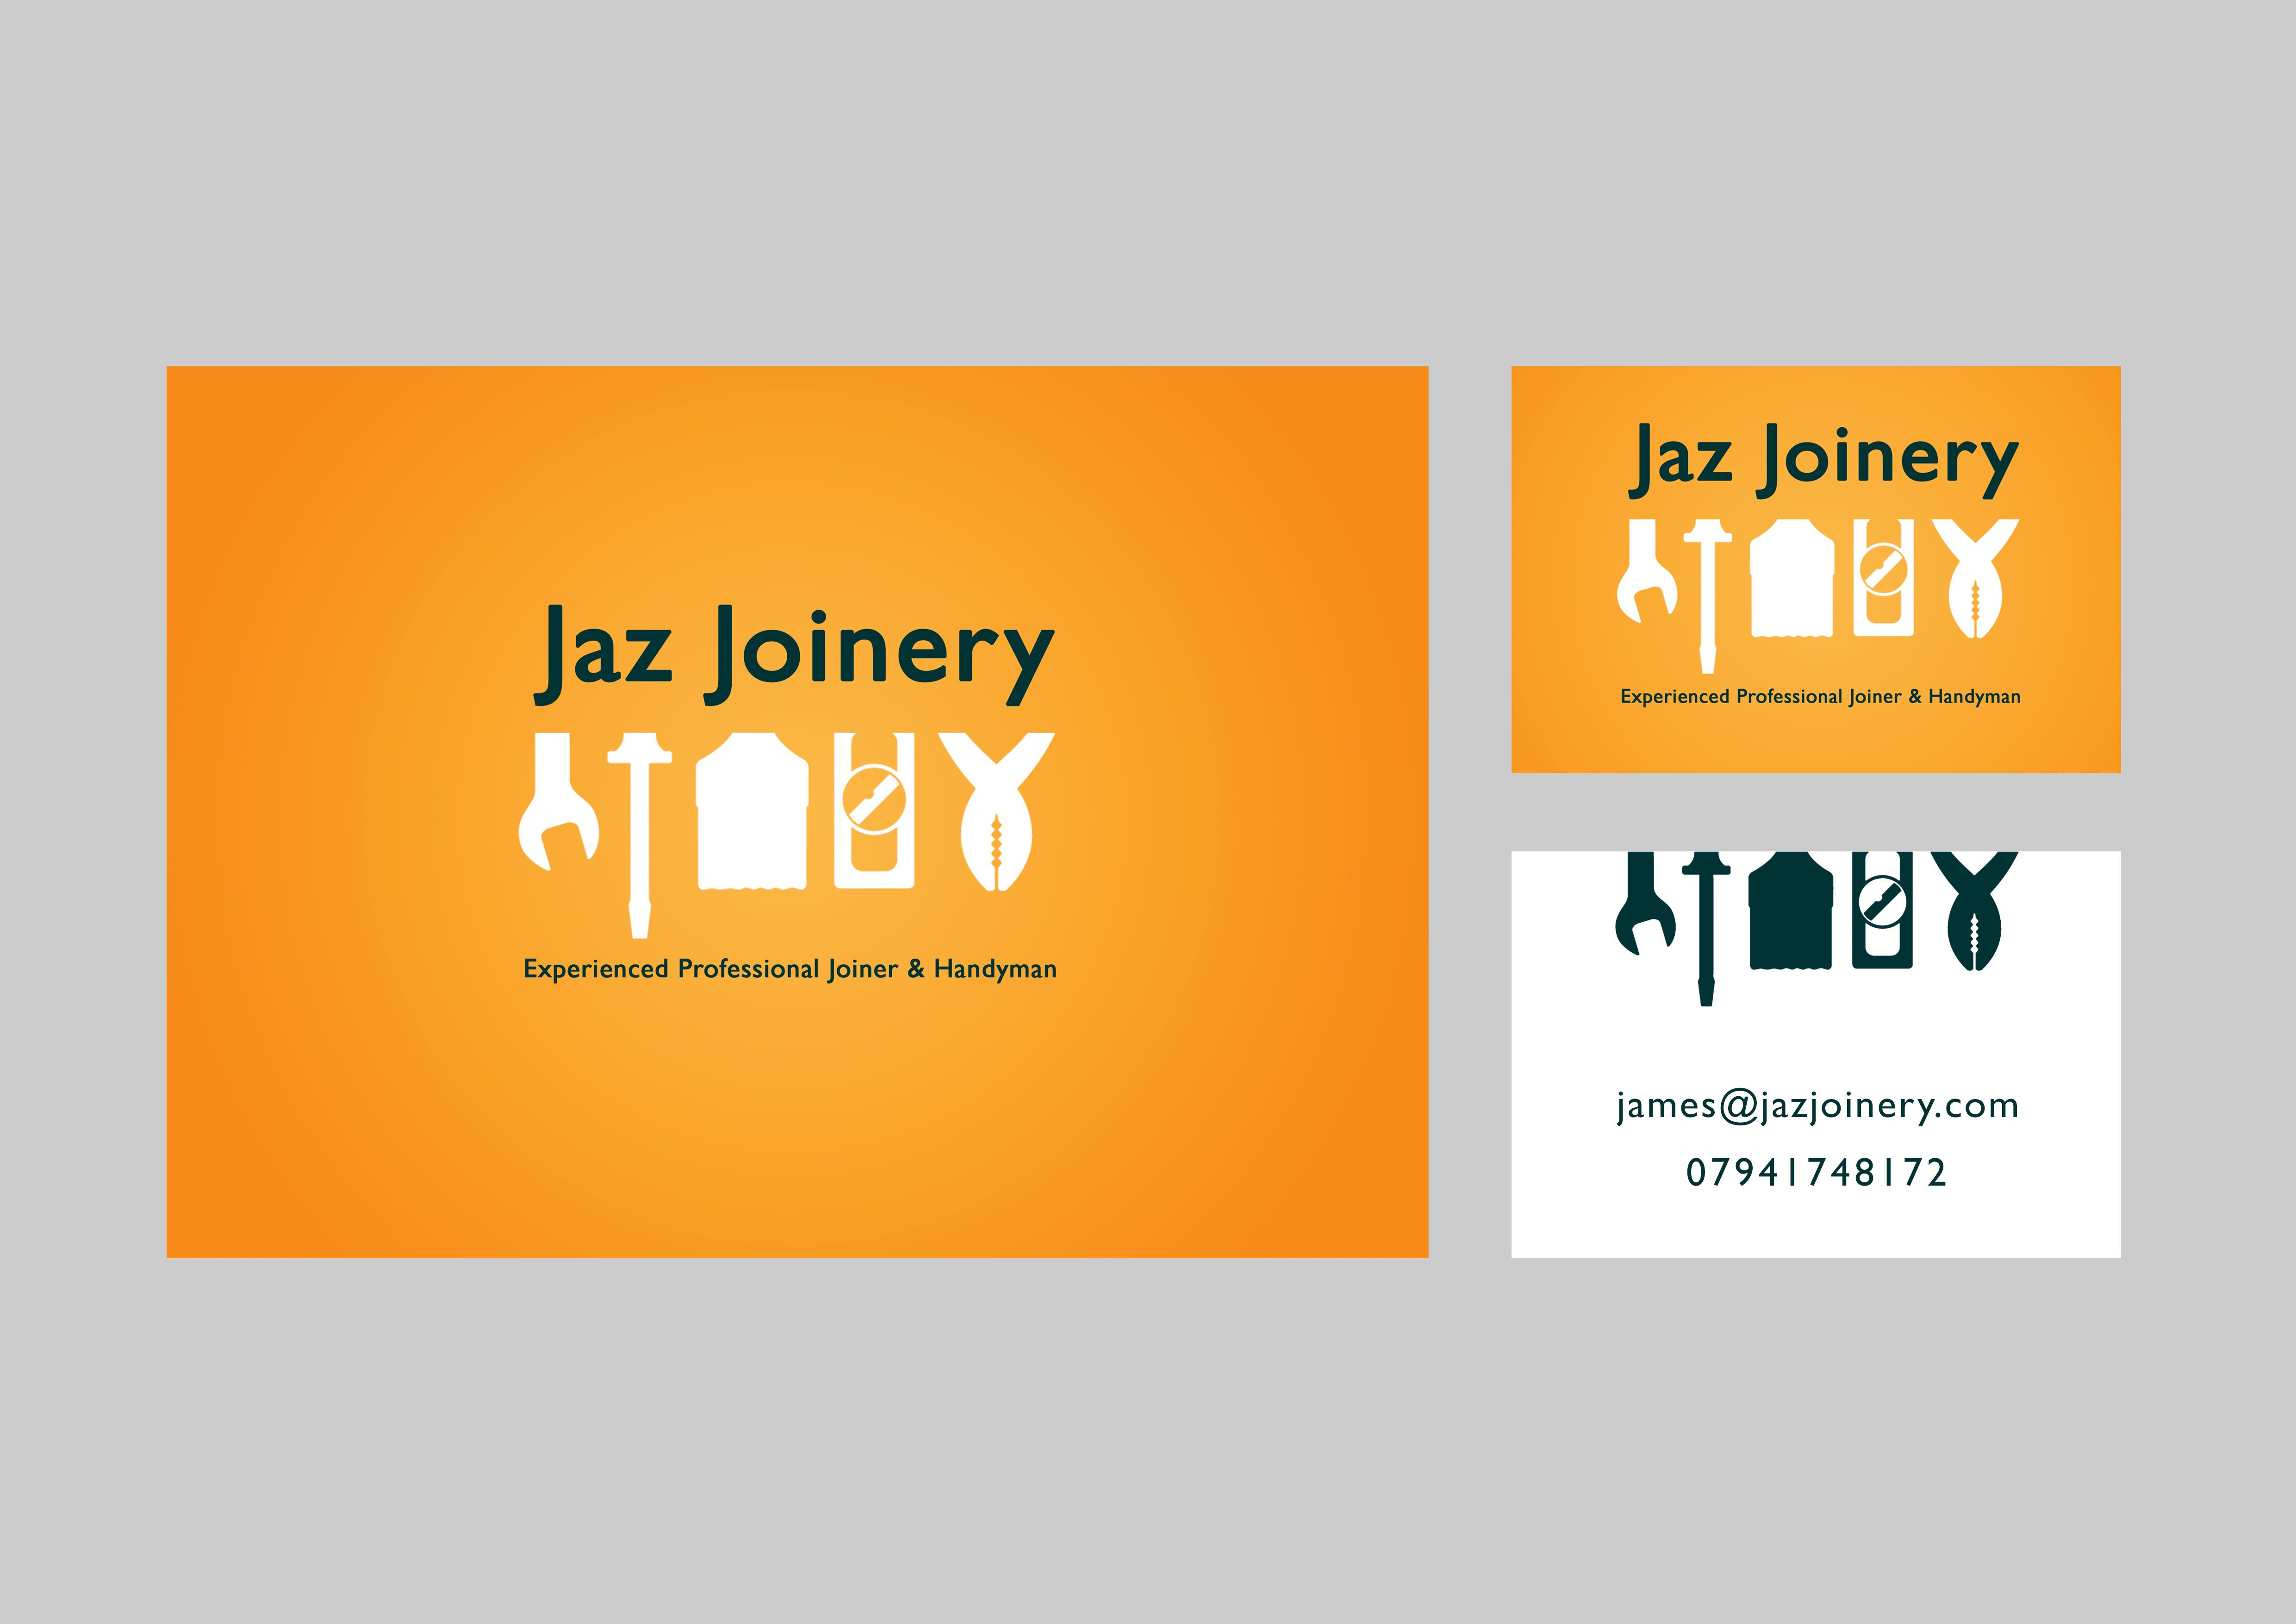 Jaz Cards Jpg 4 961 3 508 Pixels Joinery Cards Business